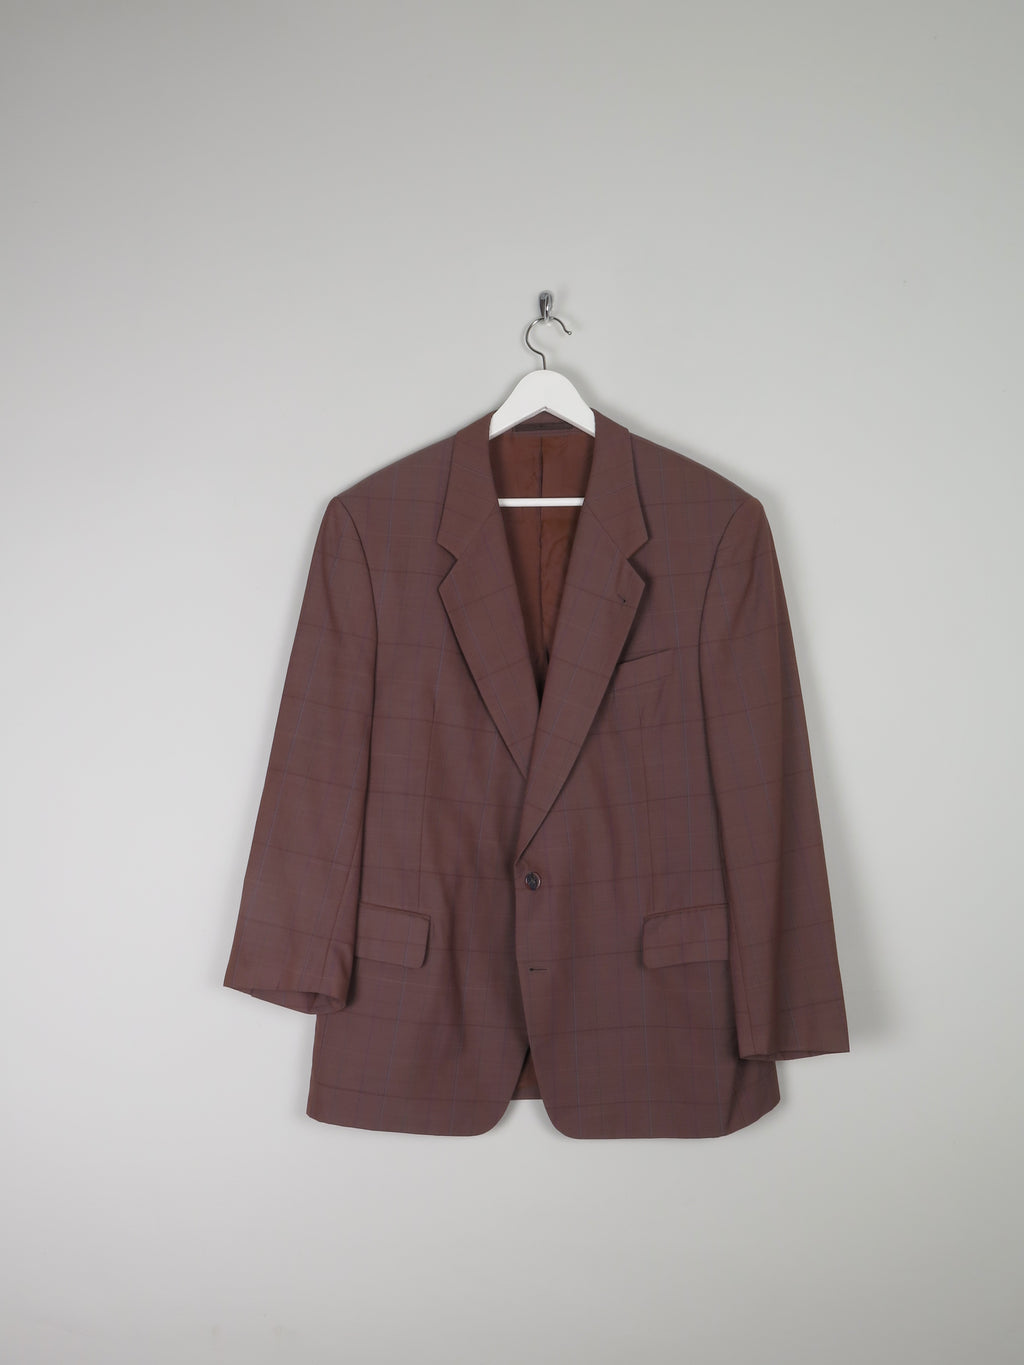 Mens Tan Brown Check Tailored Jacket 42/44 Chest sleeves 24 (s)